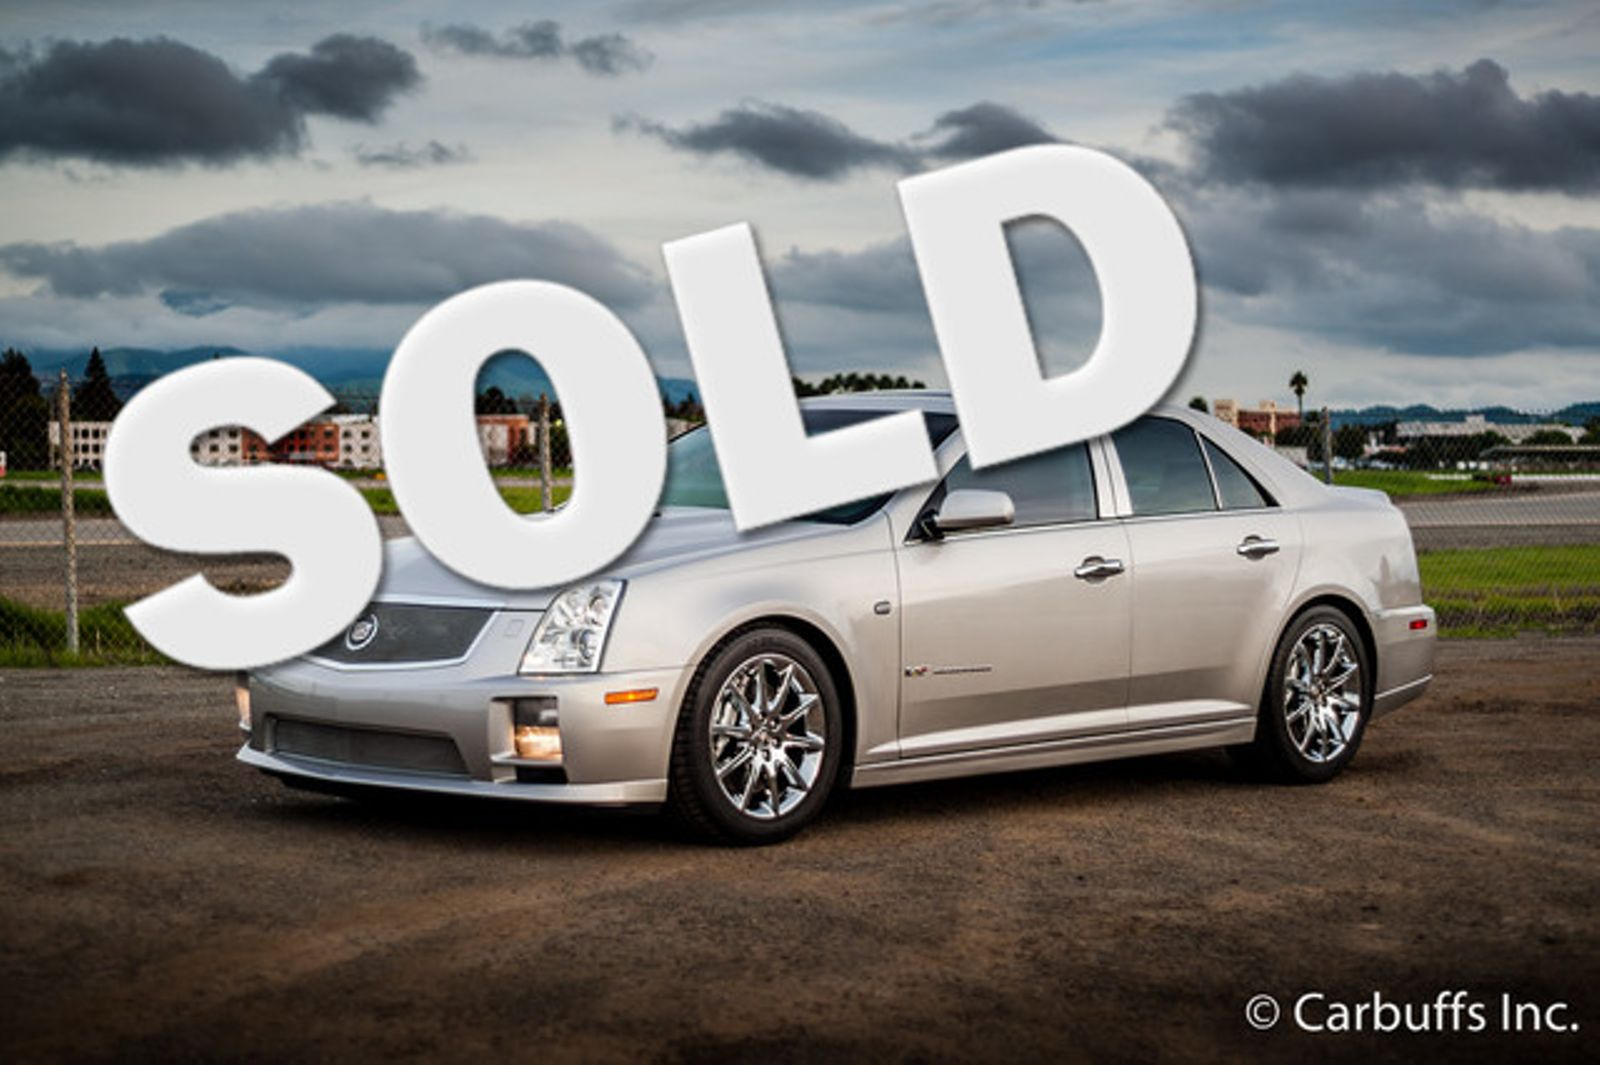 cadillac v to sales sts size view r here llc auto for full in ky mt washington click photos sale s